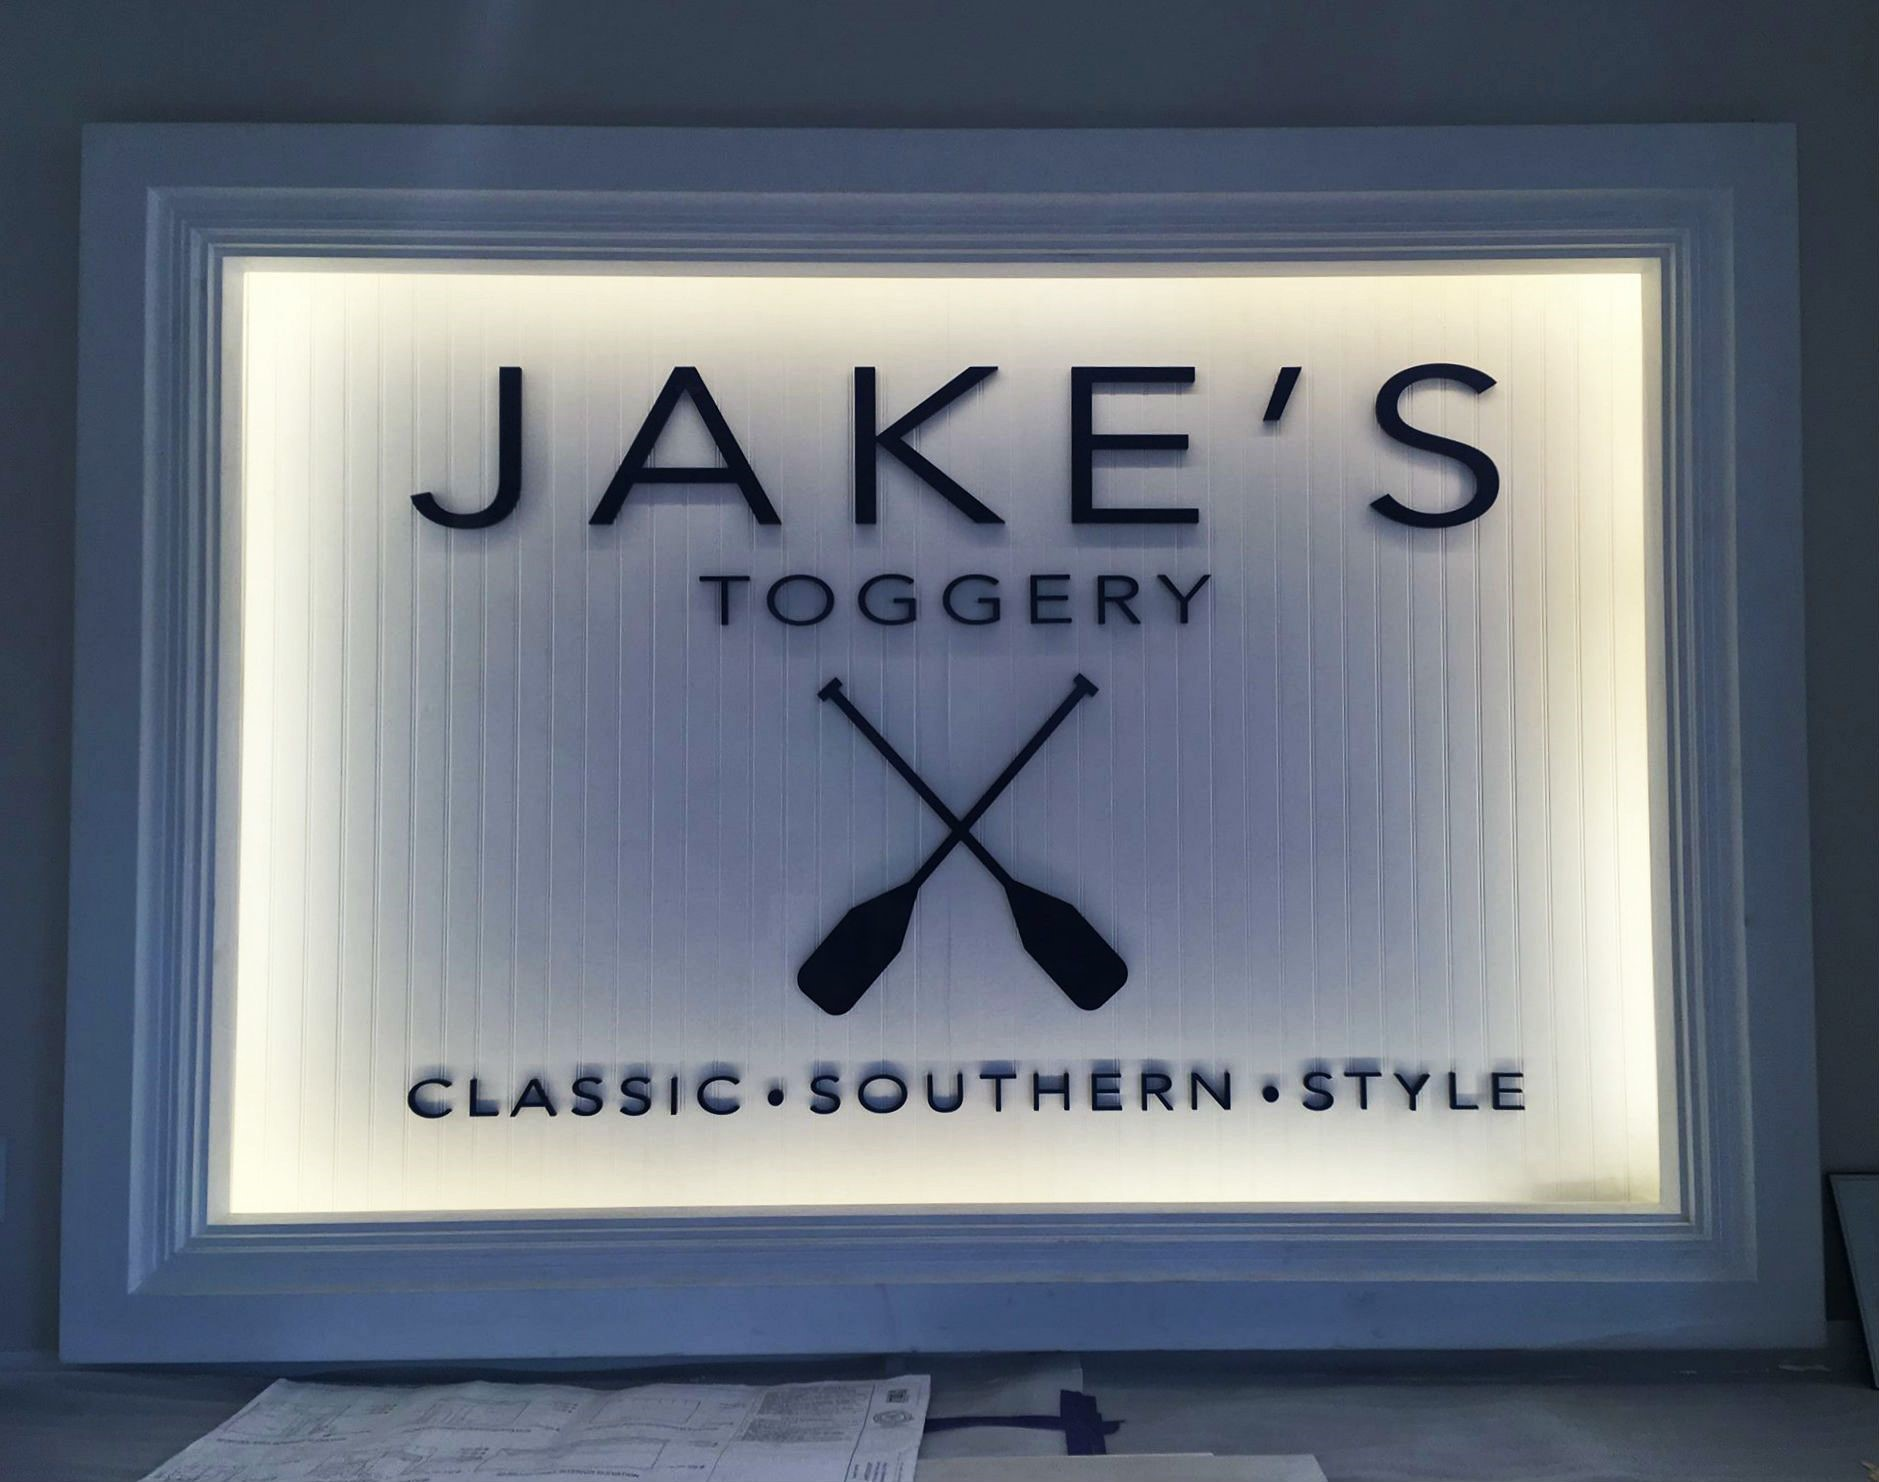 Illuminated Dimensional Sign for Jake's Toggery